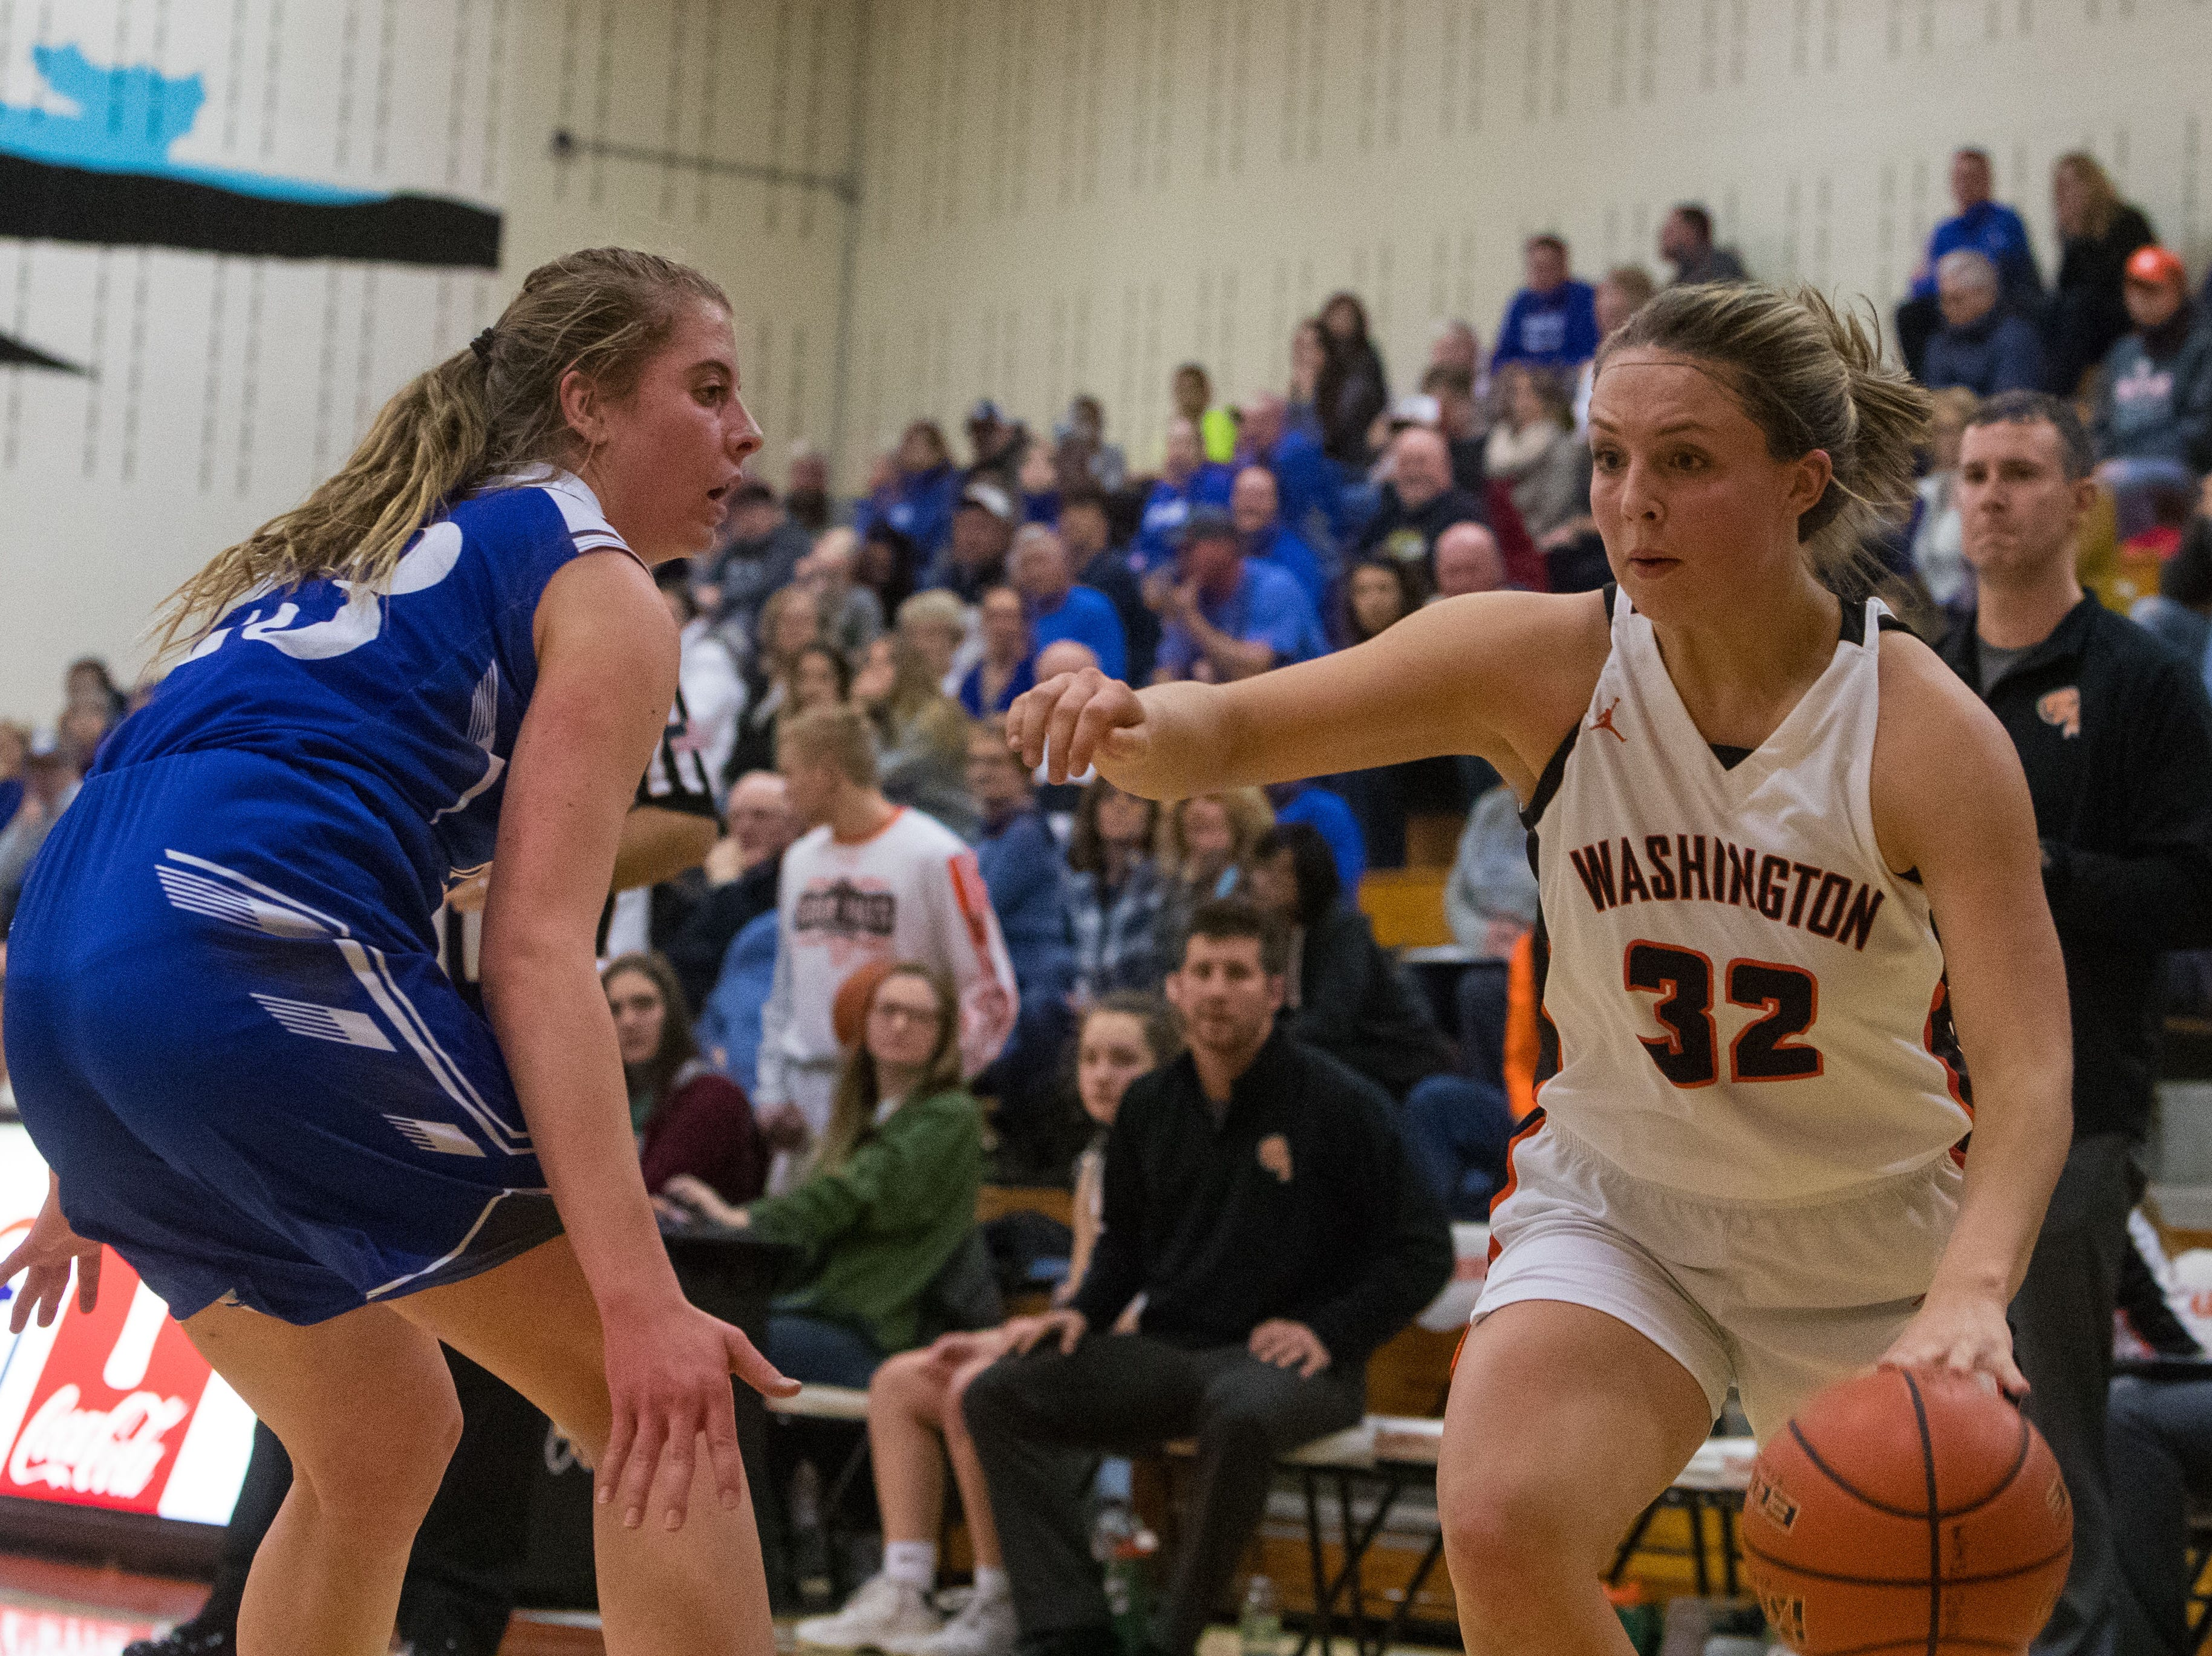 Washington's Peyton Rymerson (32) dribbles the ball past Rapid City Stevens player during a game in Sioux Falls, S.D., Friday, Feb. 8, 2019.